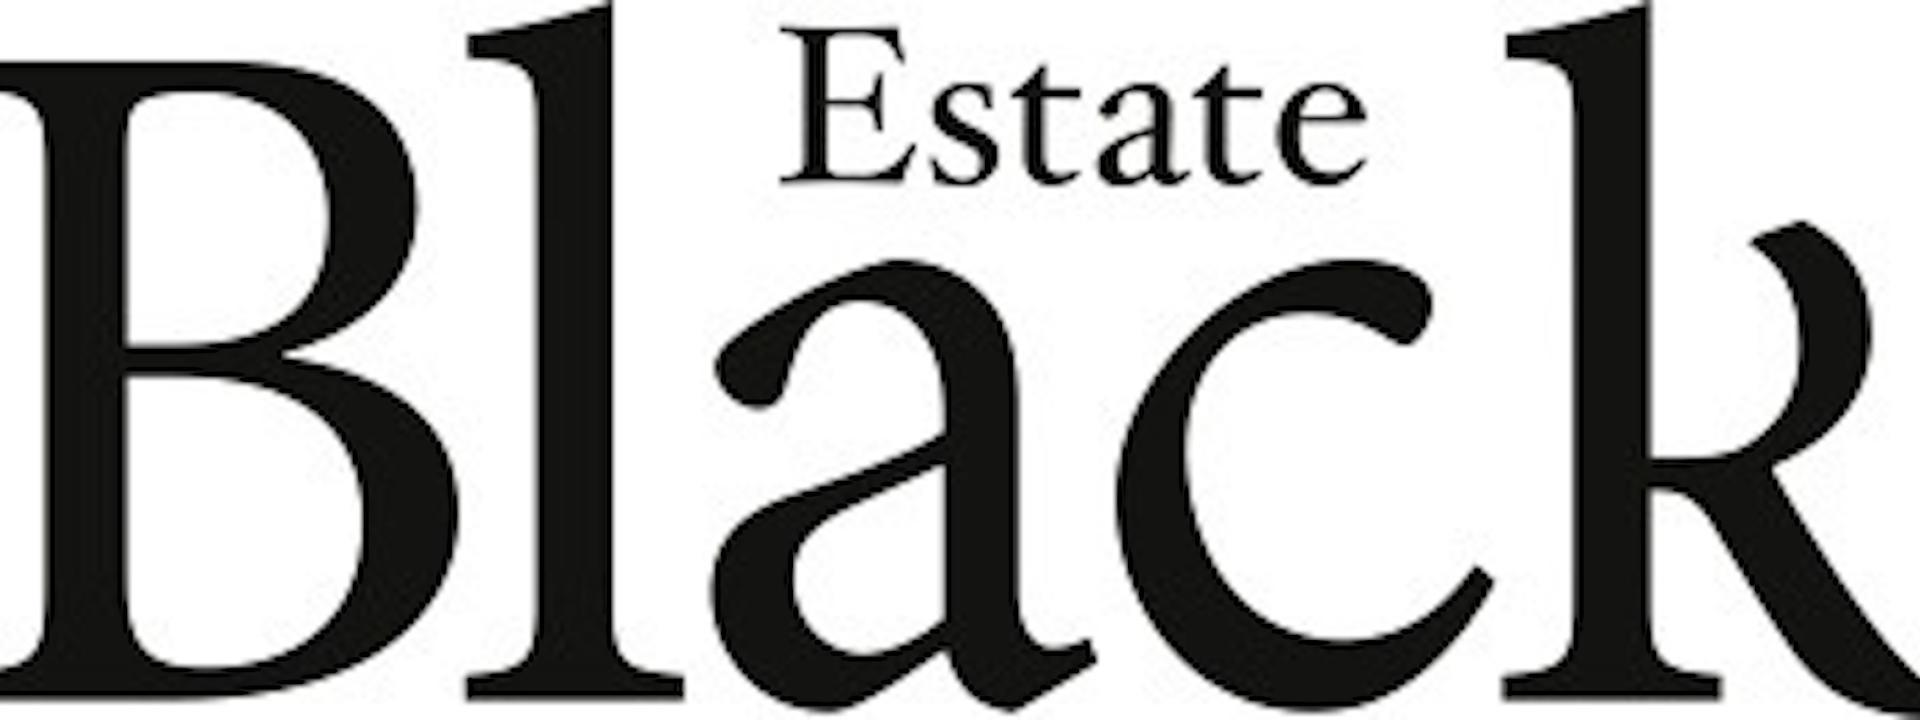 Black Estate Logo JPEG